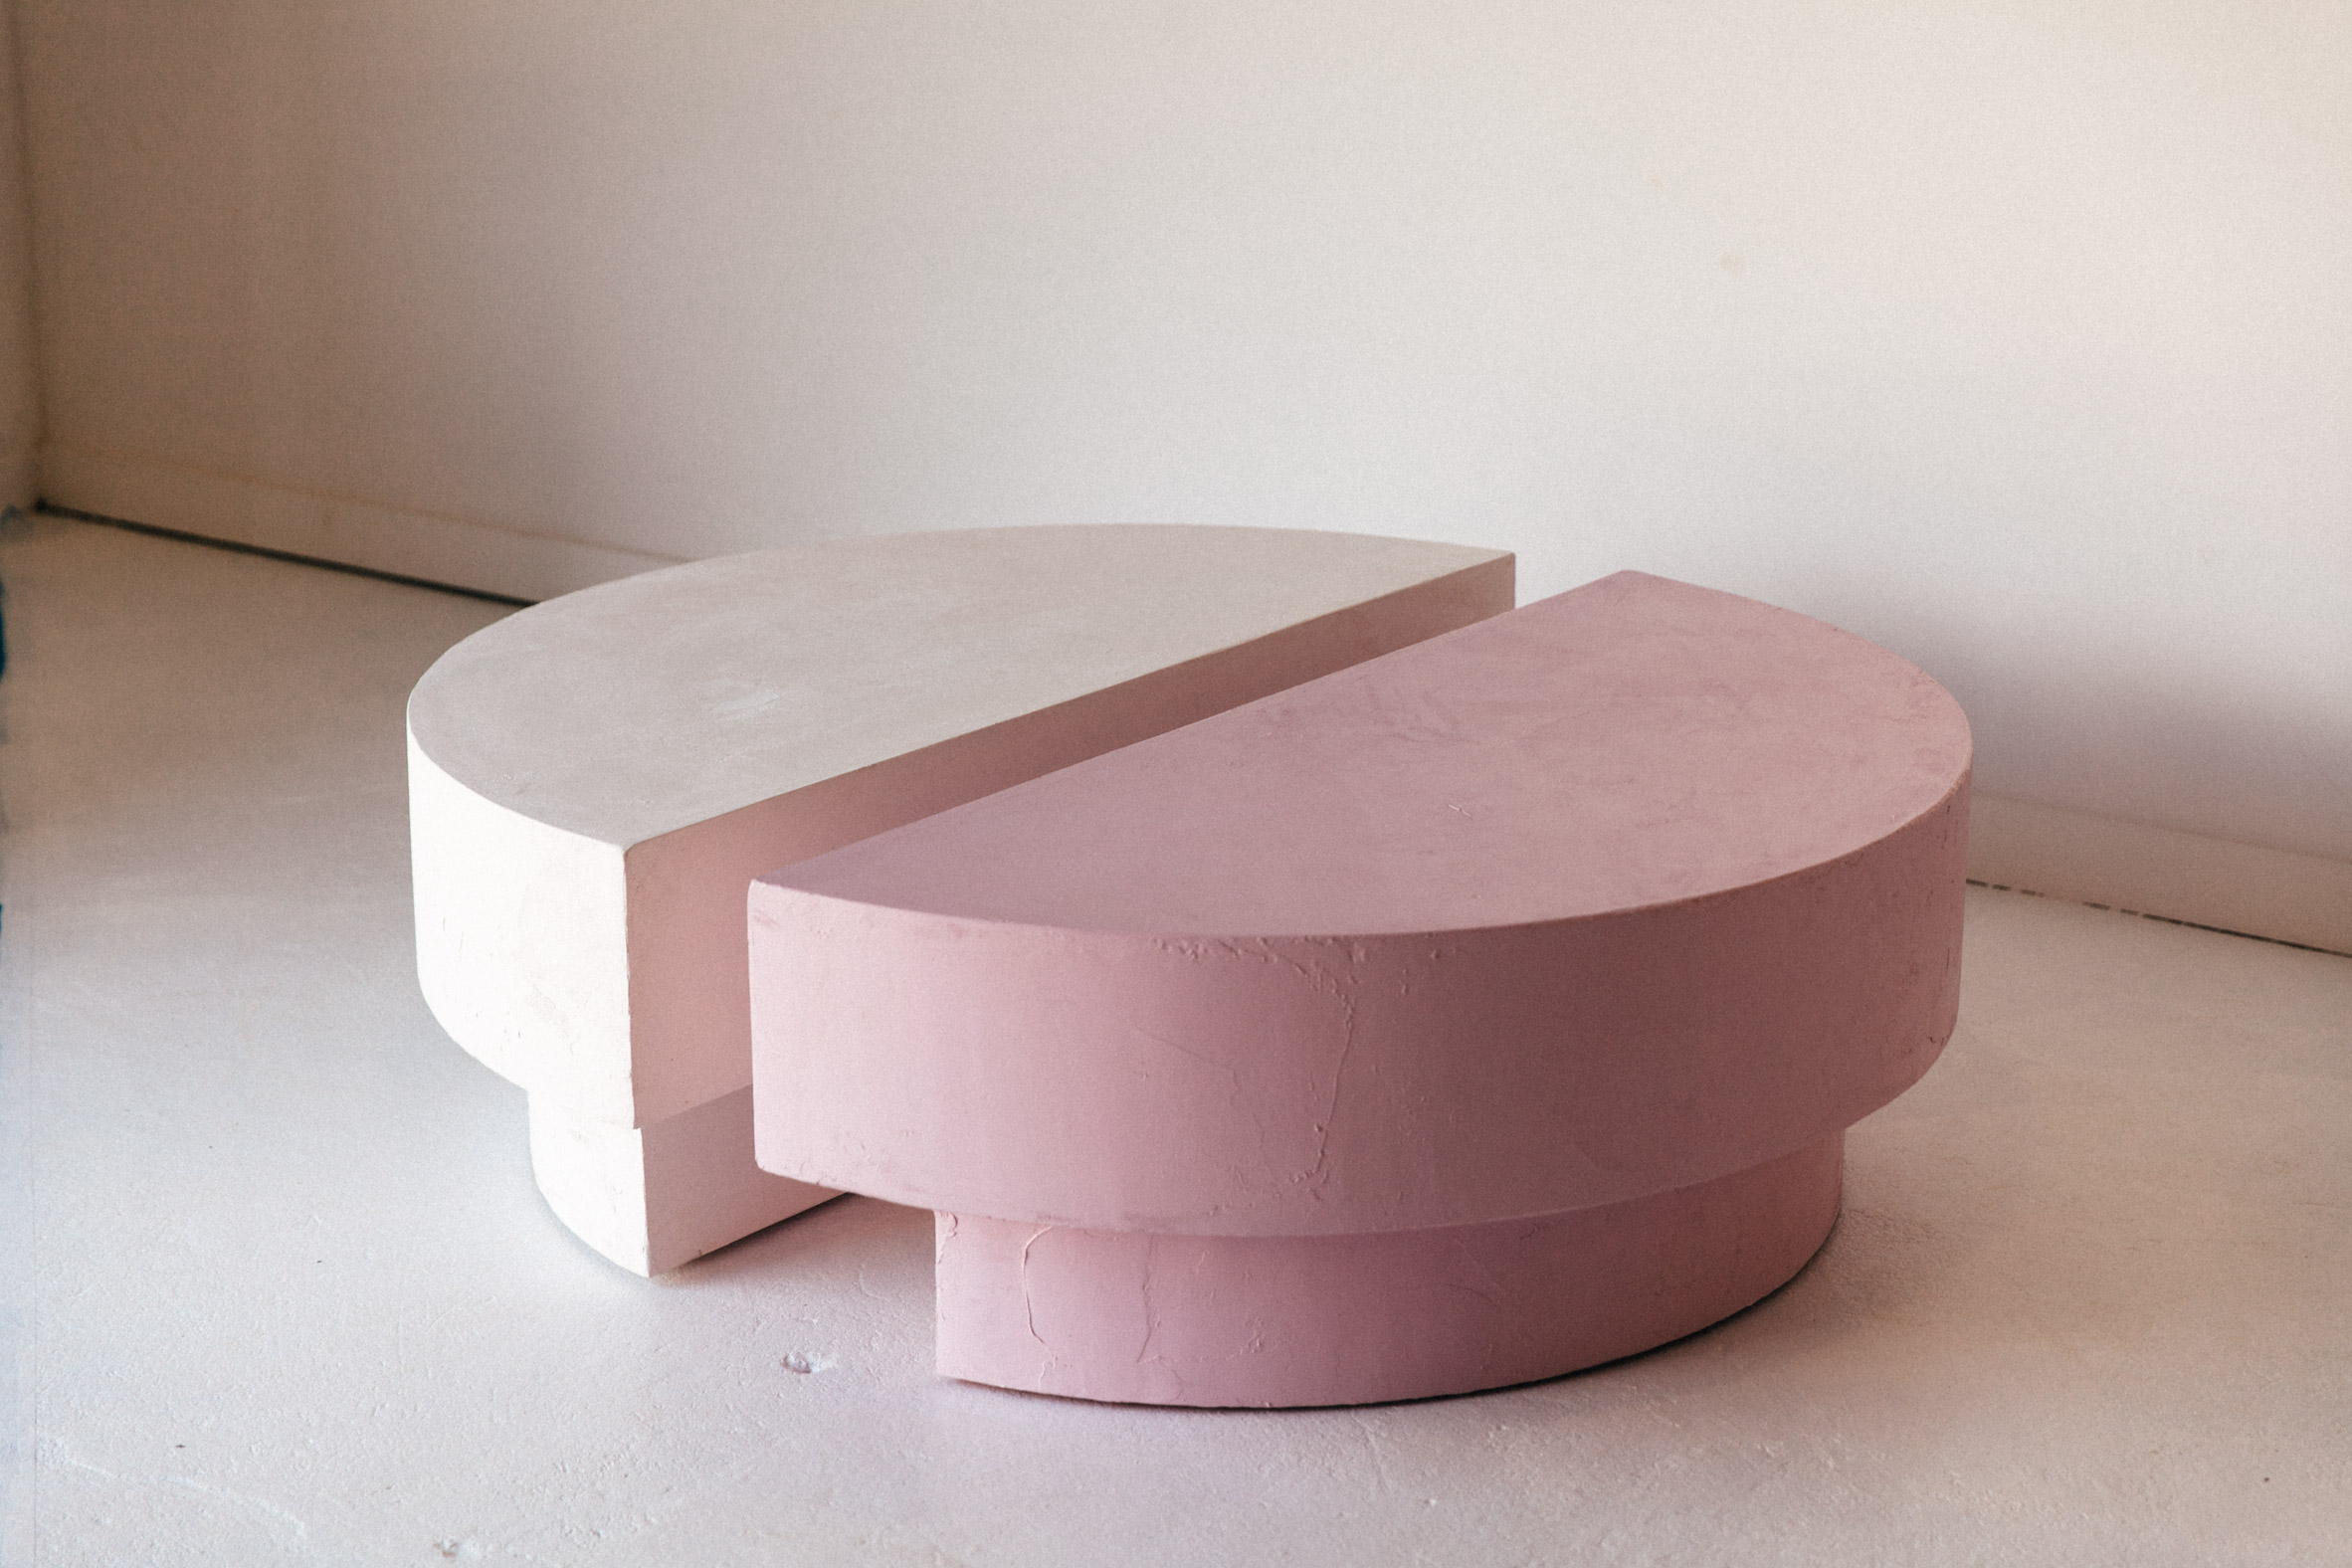 Abbott is a coffee table made of two crescent shapes